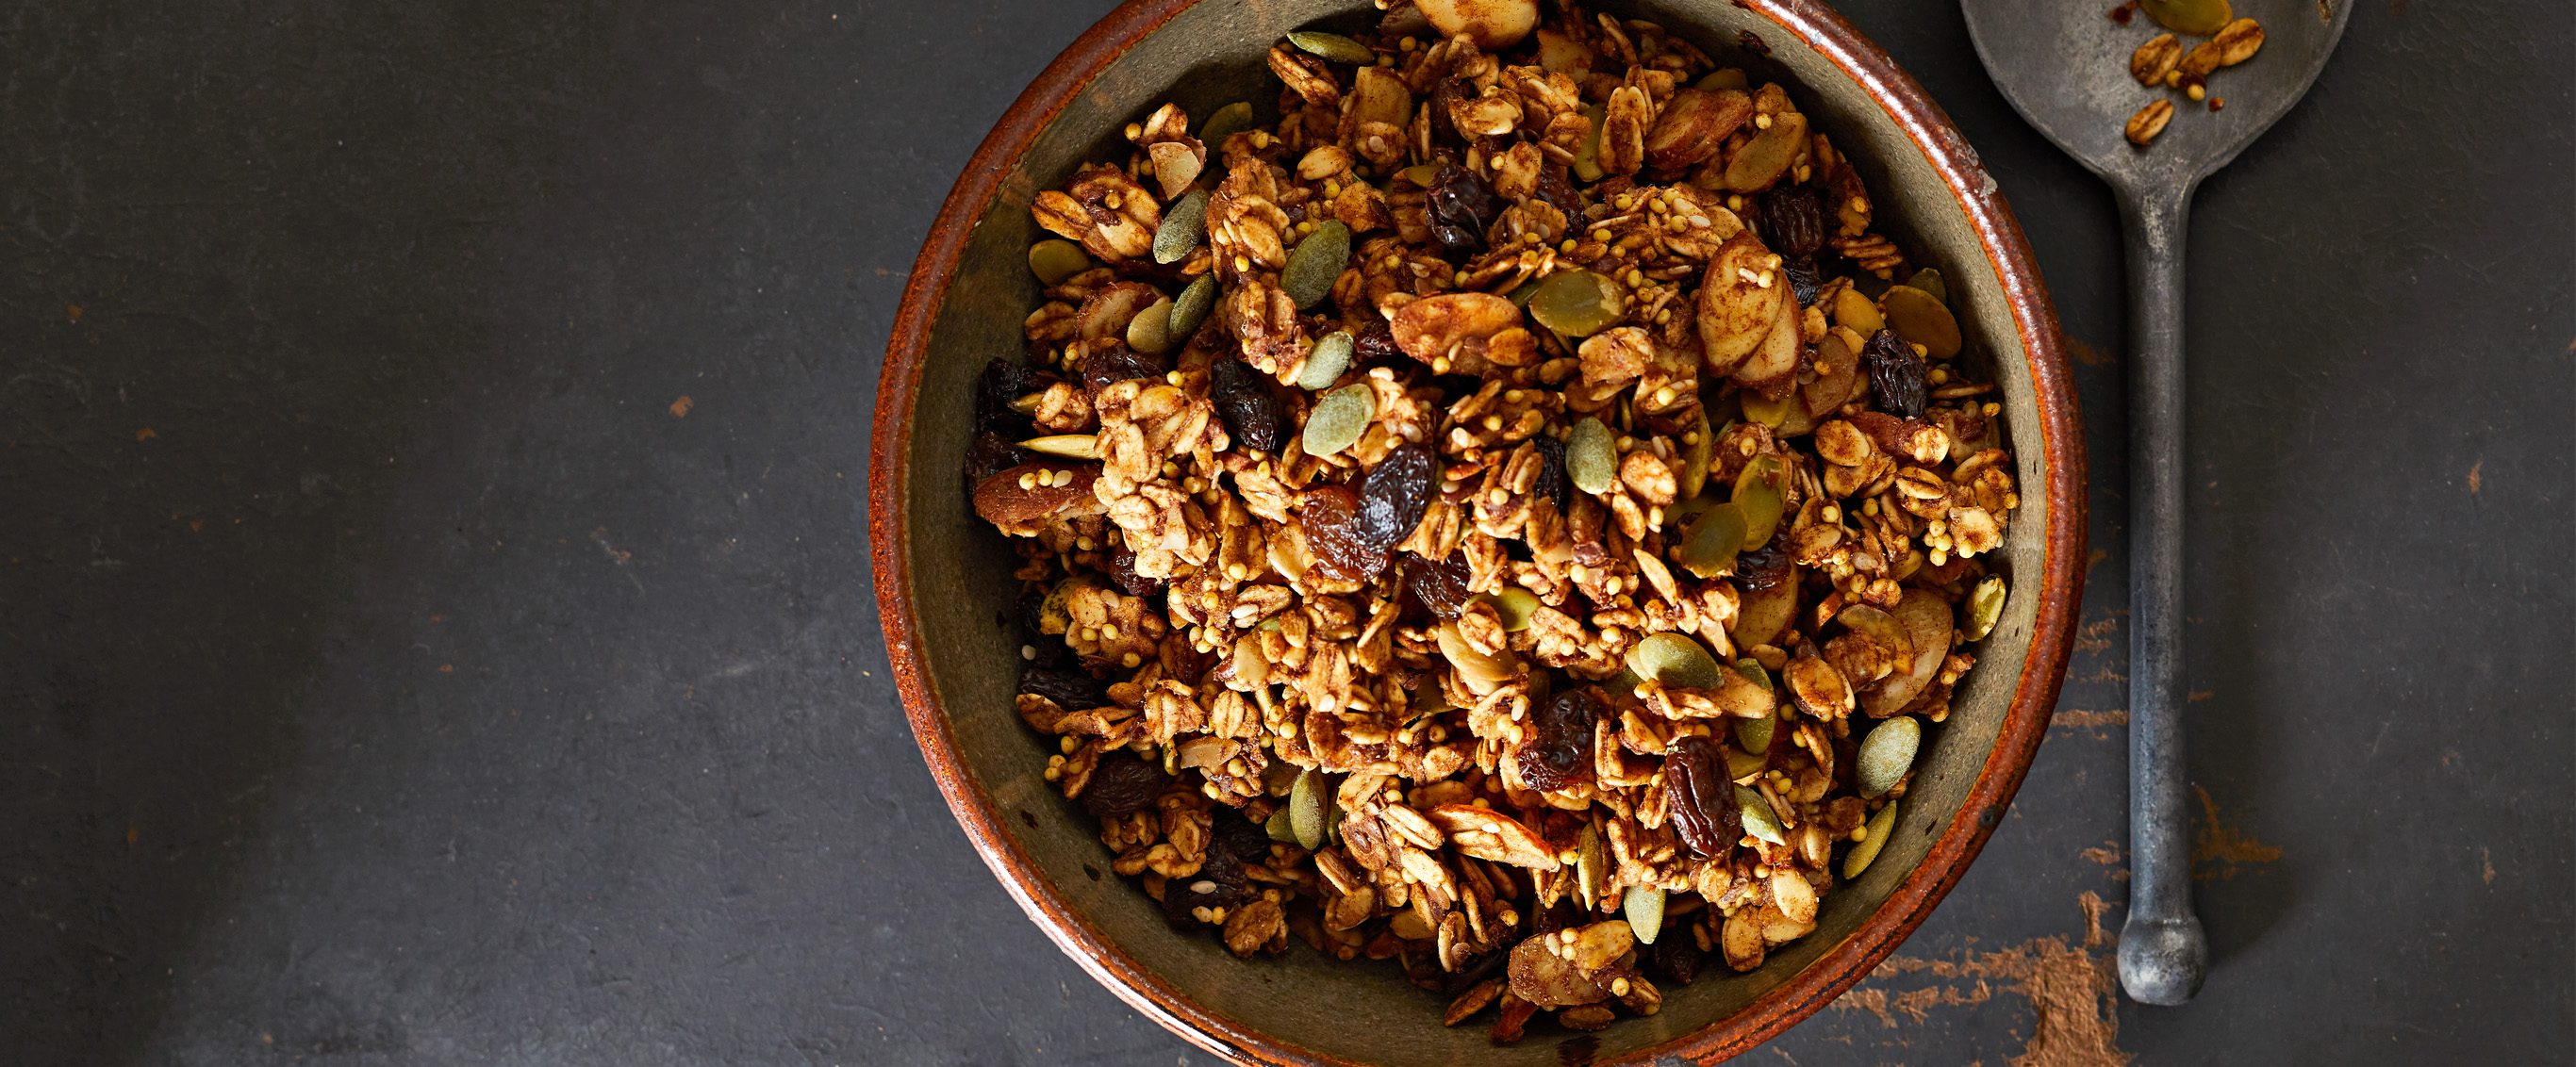 Pumpkin Seed Granola with Millet and Oats